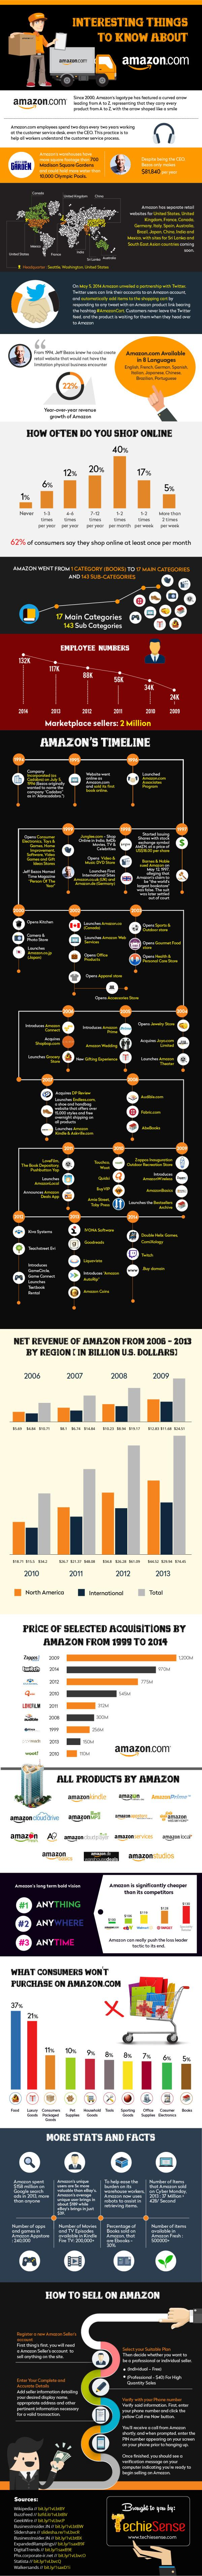 Interesting Things to Know About Amazon